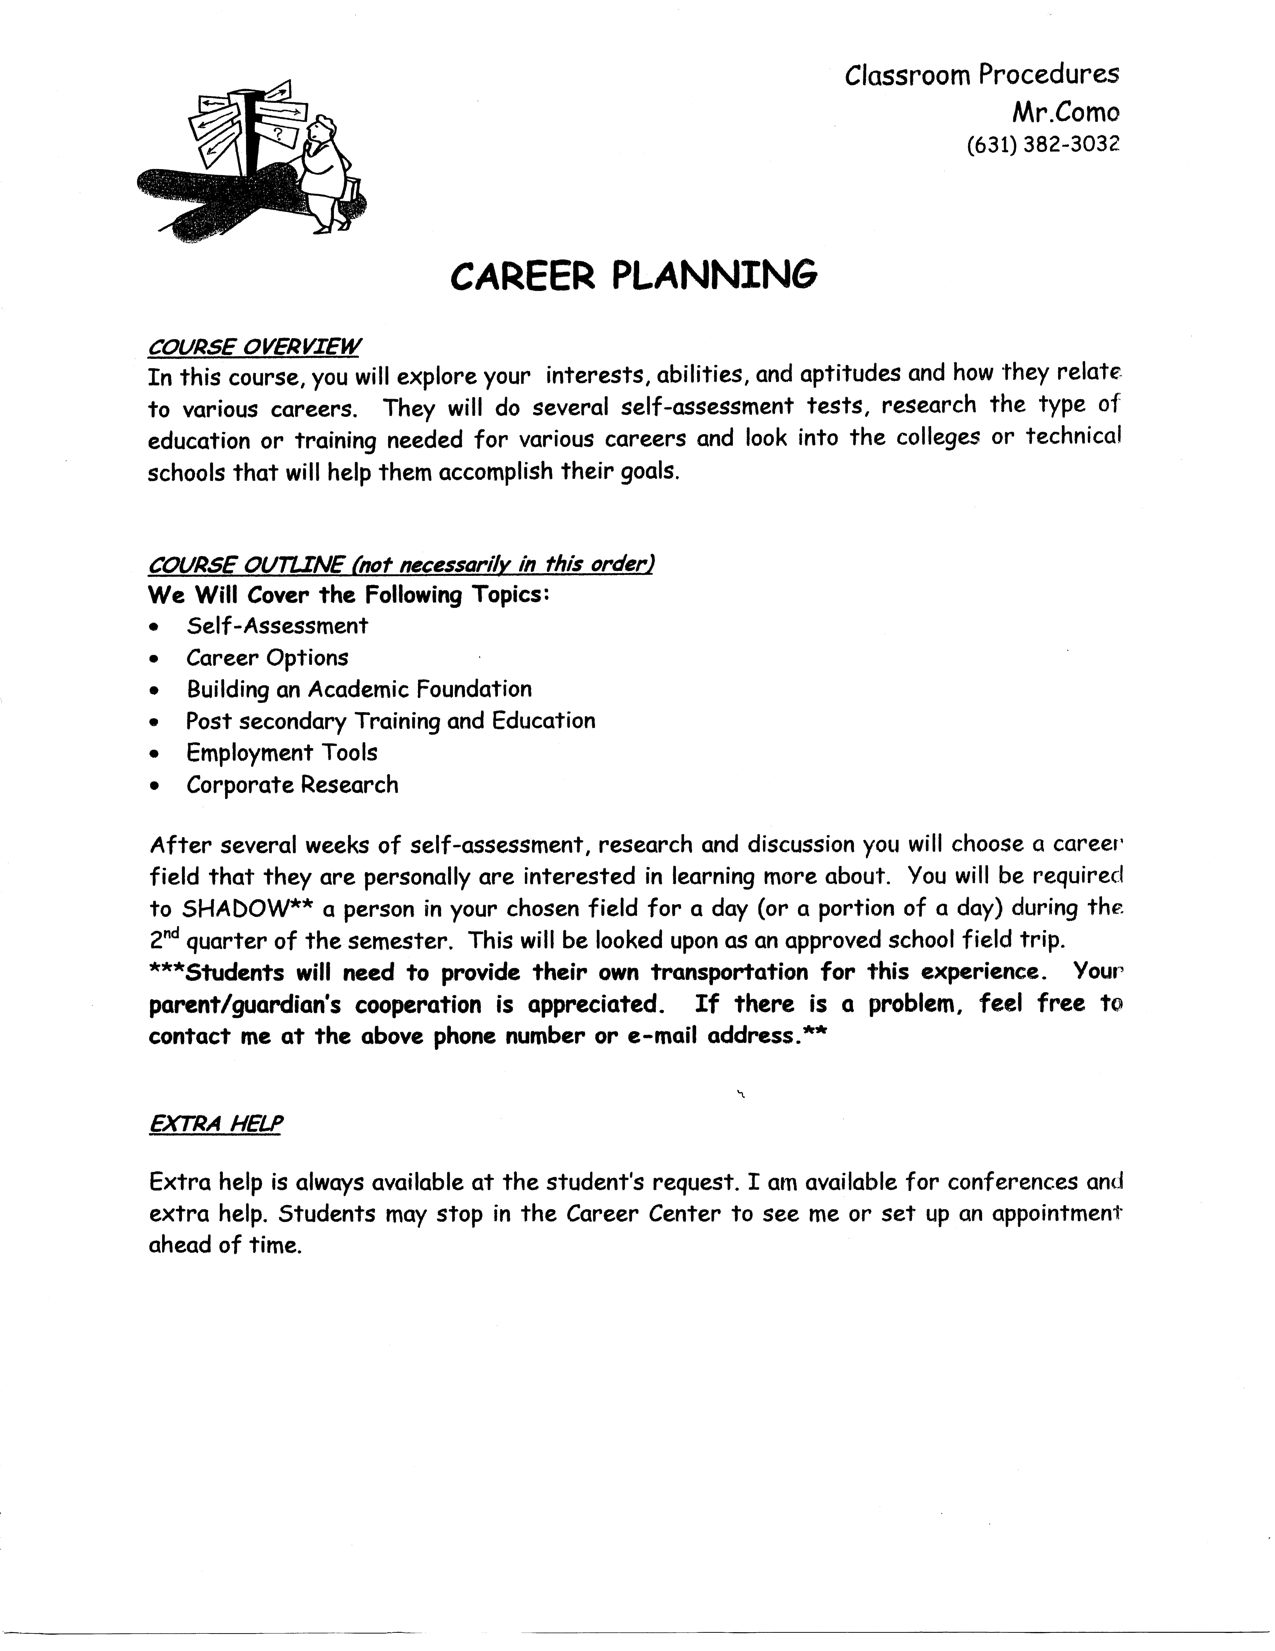 Career Plans and Goals Essay Examples